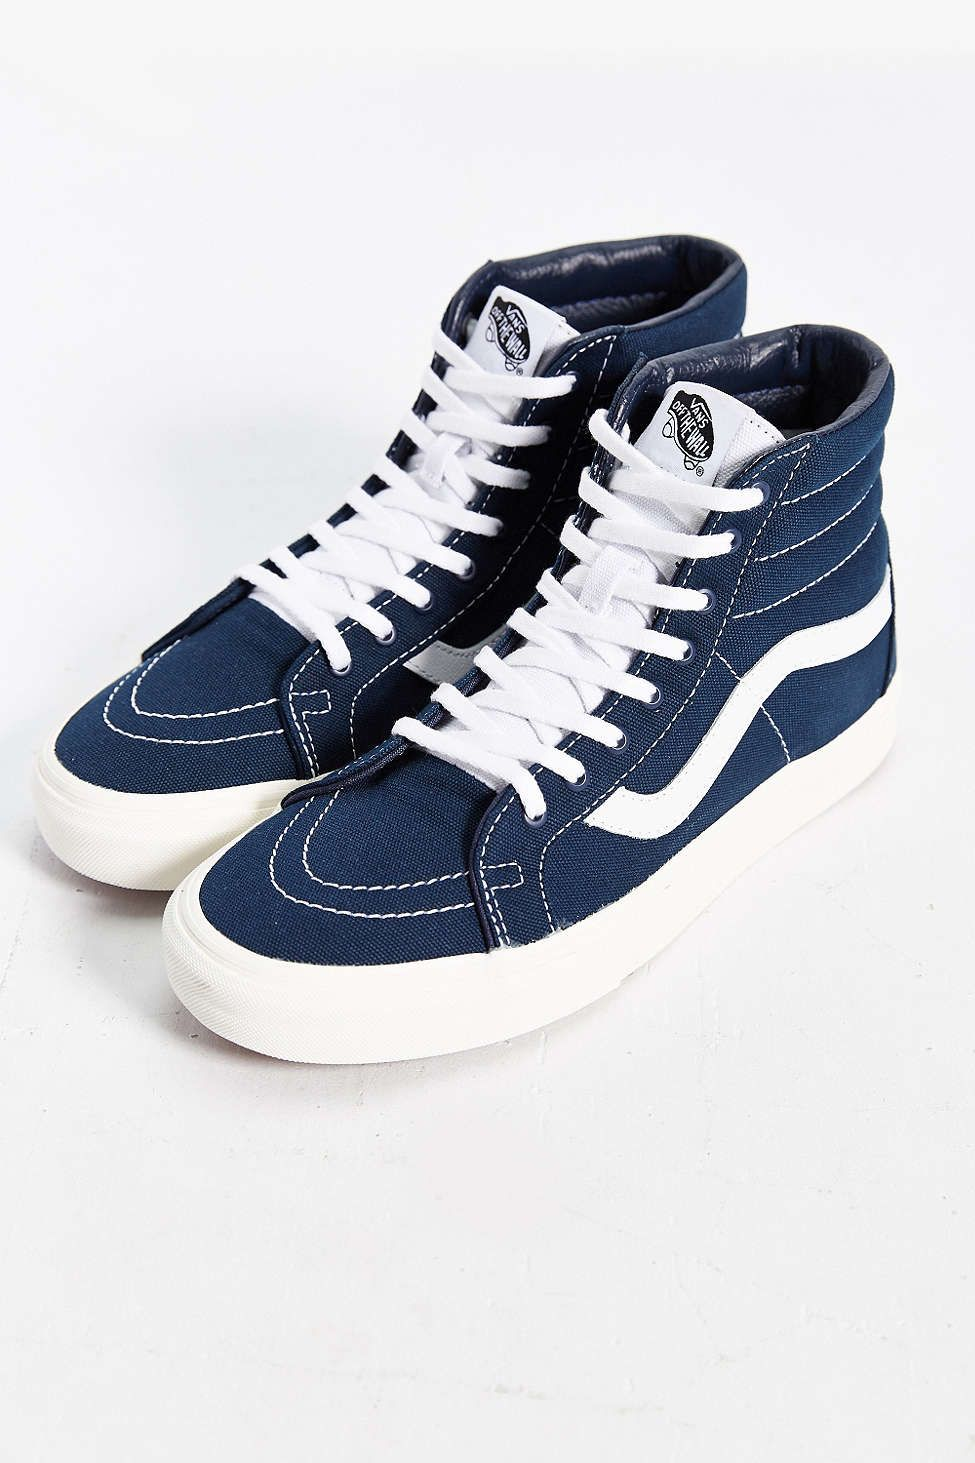 9c8dc51faee Vans Sk8 High-Top Reissue Canvas Men s Sneaker